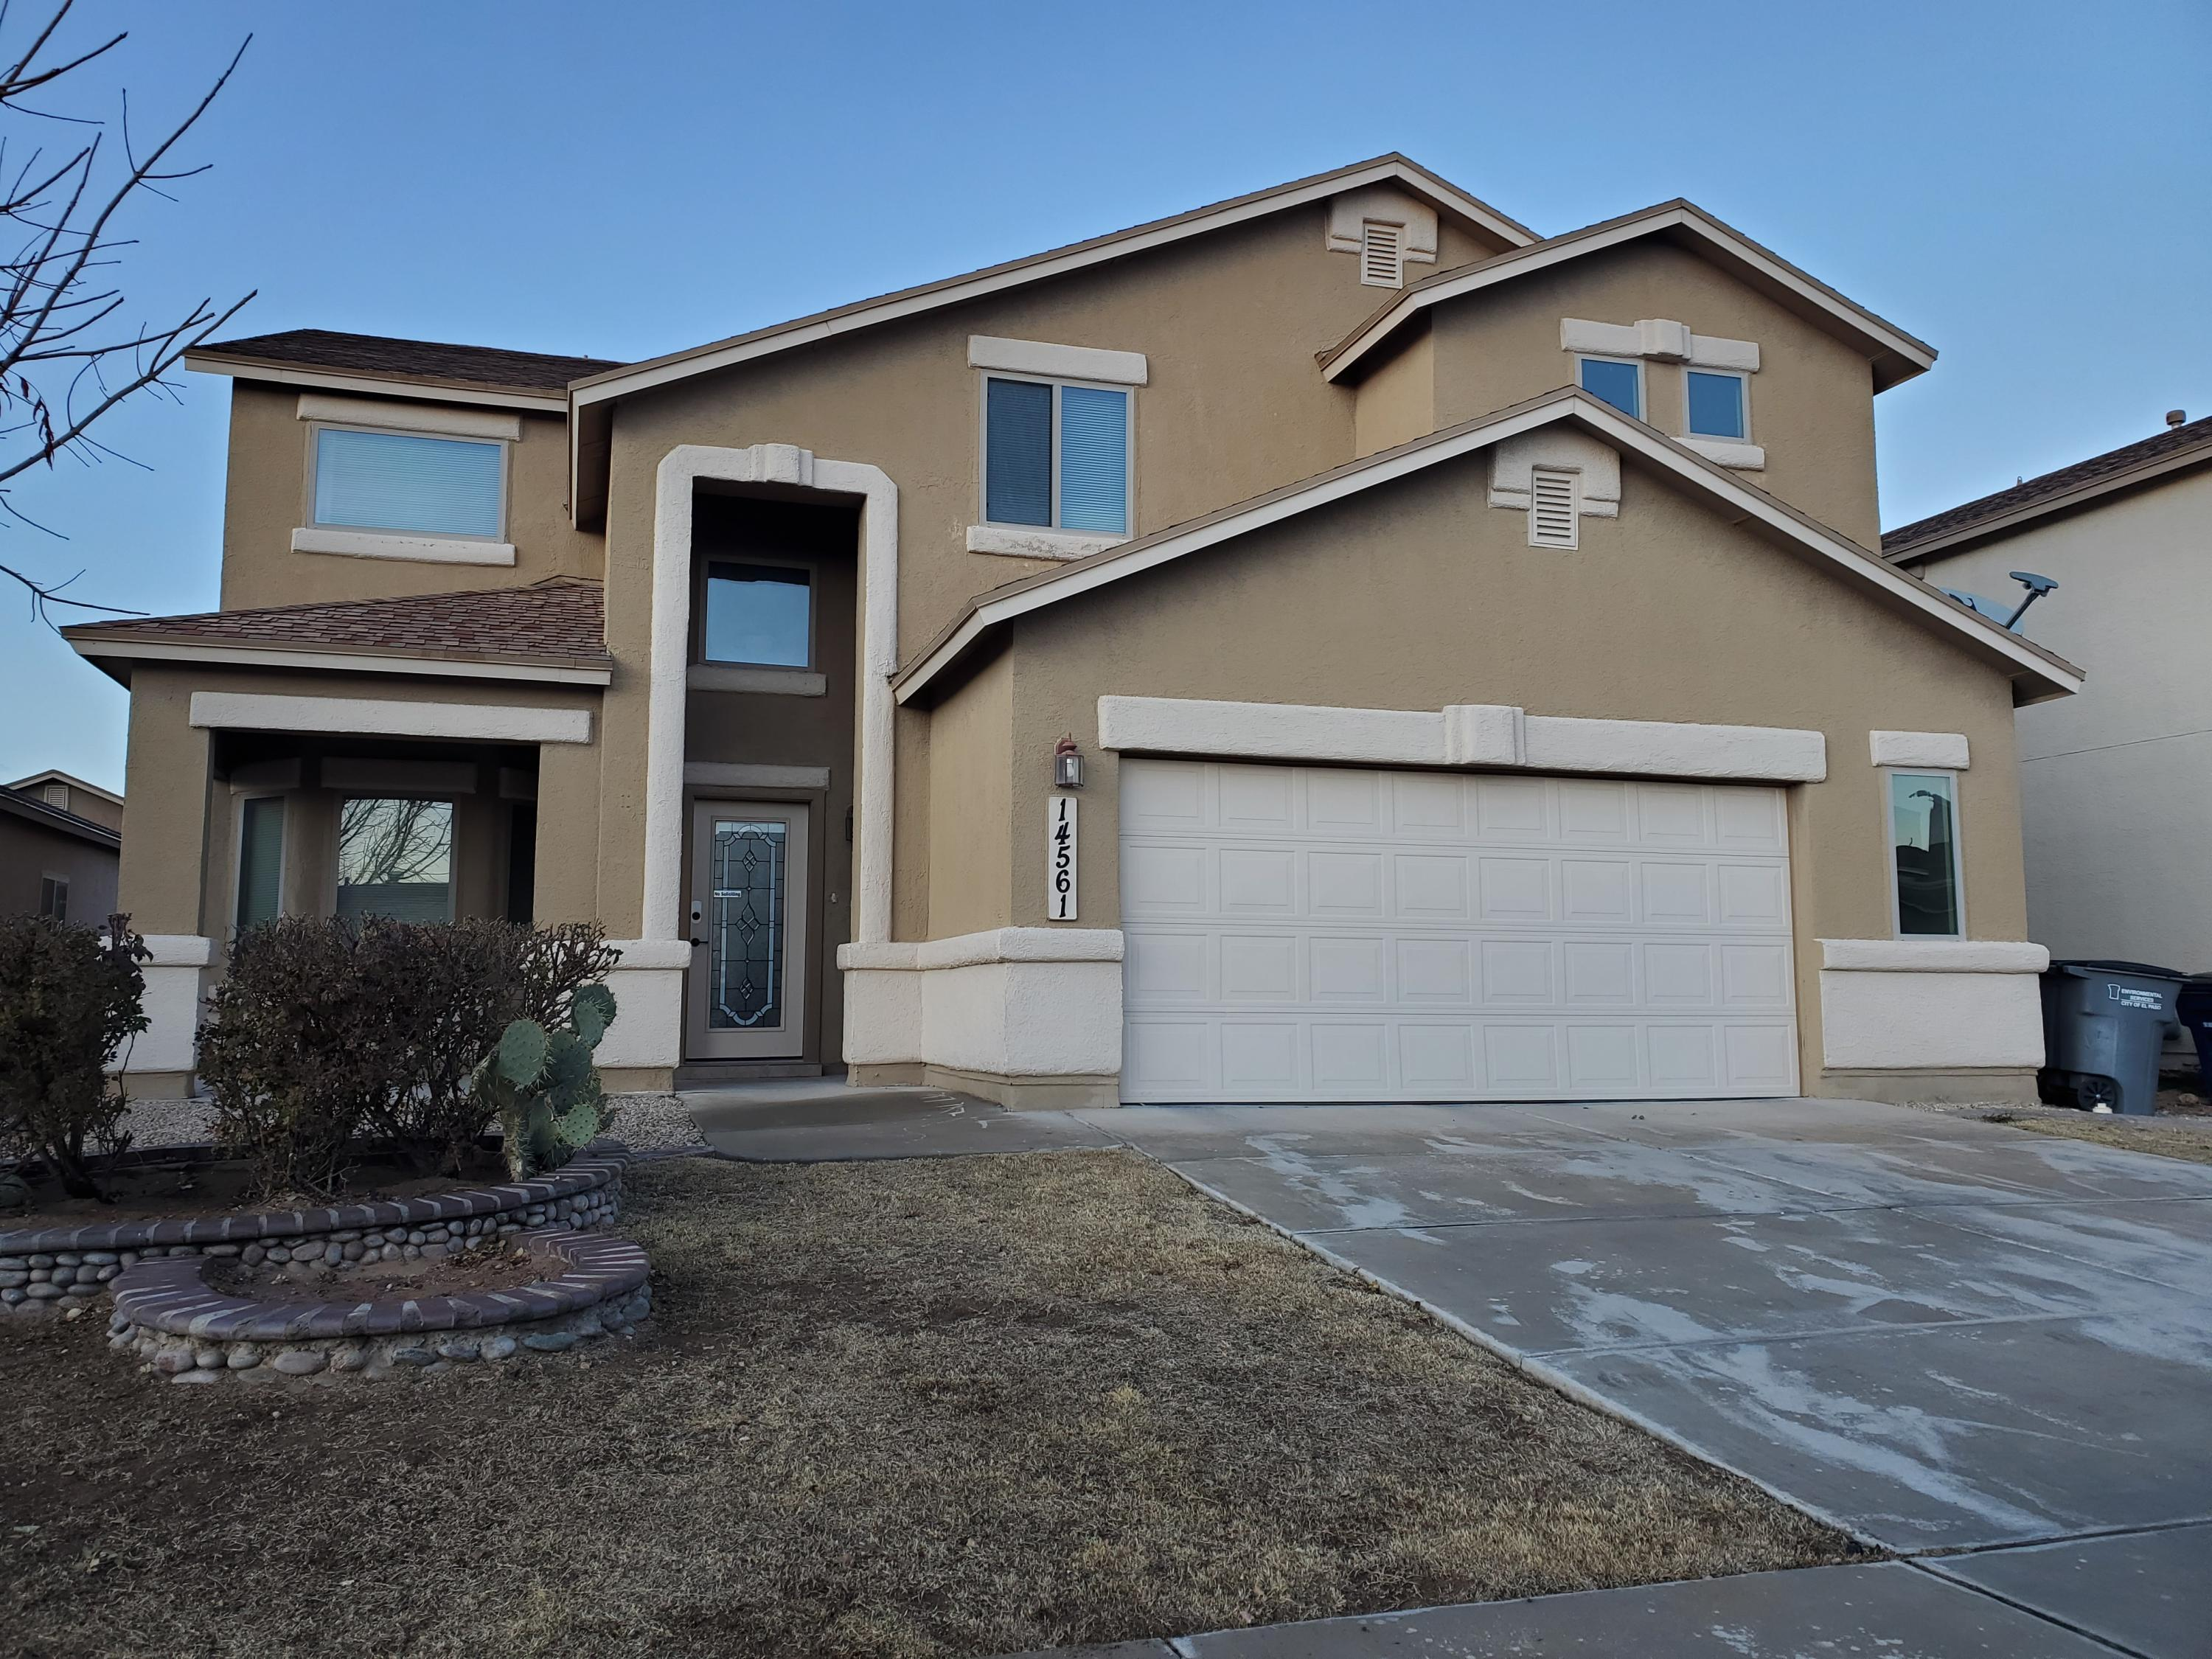 14561 SPANISH POINT Drive, El Paso, Texas 79938, 4 Bedrooms Bedrooms, ,3 BathroomsBathrooms,Residential Rental,For Rent,SPANISH POINT,821368